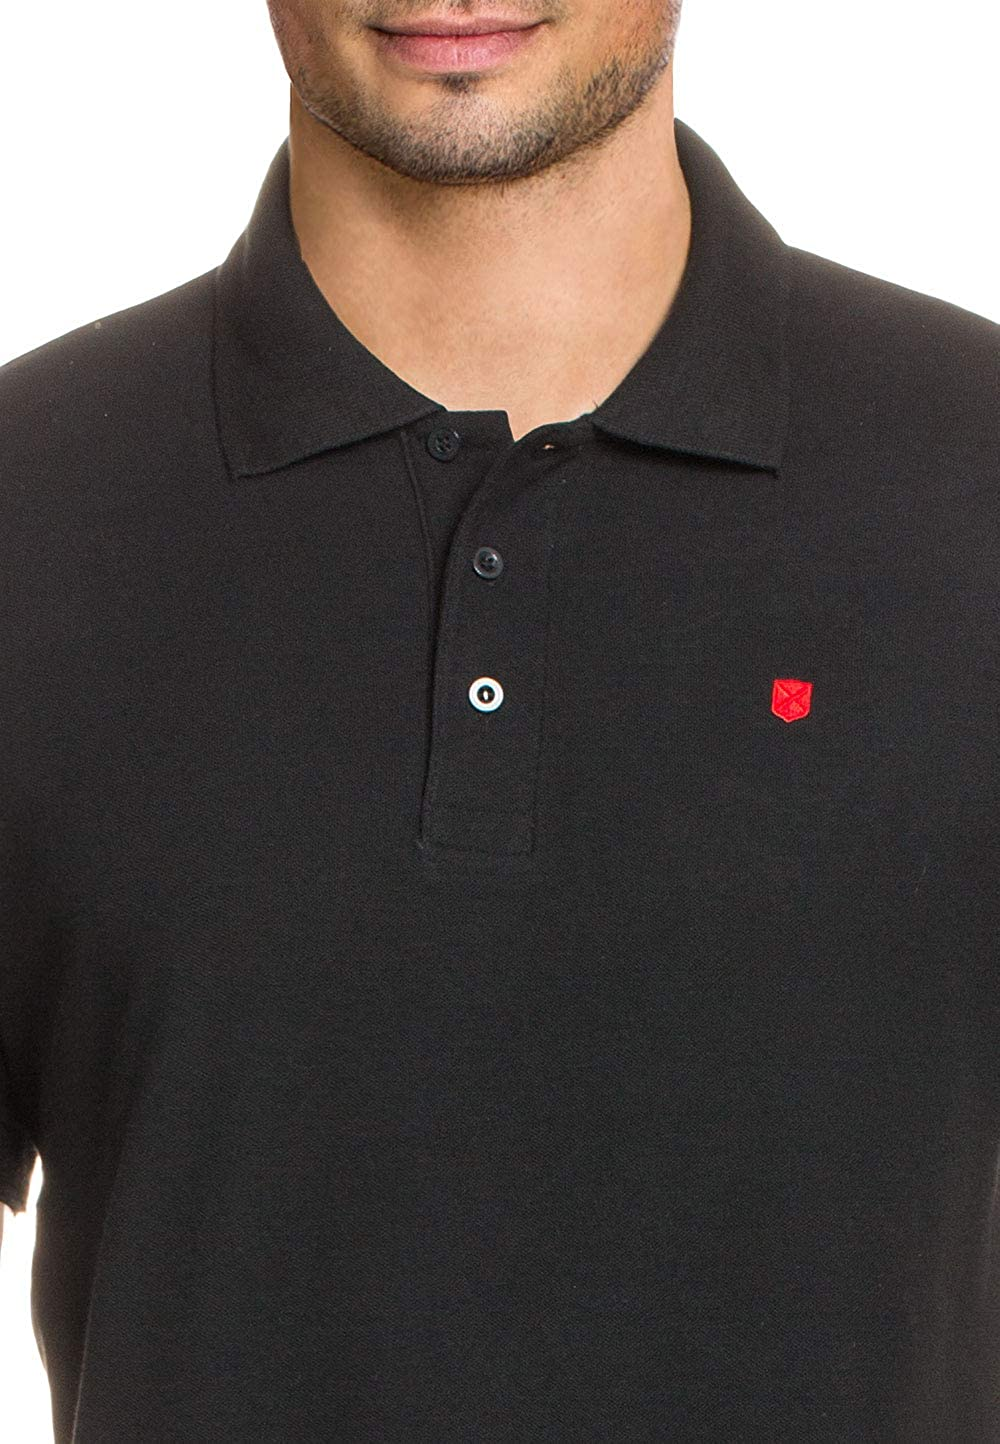 POLO CLUB Polo Gentle Pure Negro S: Amazon.es: Ropa y accesorios